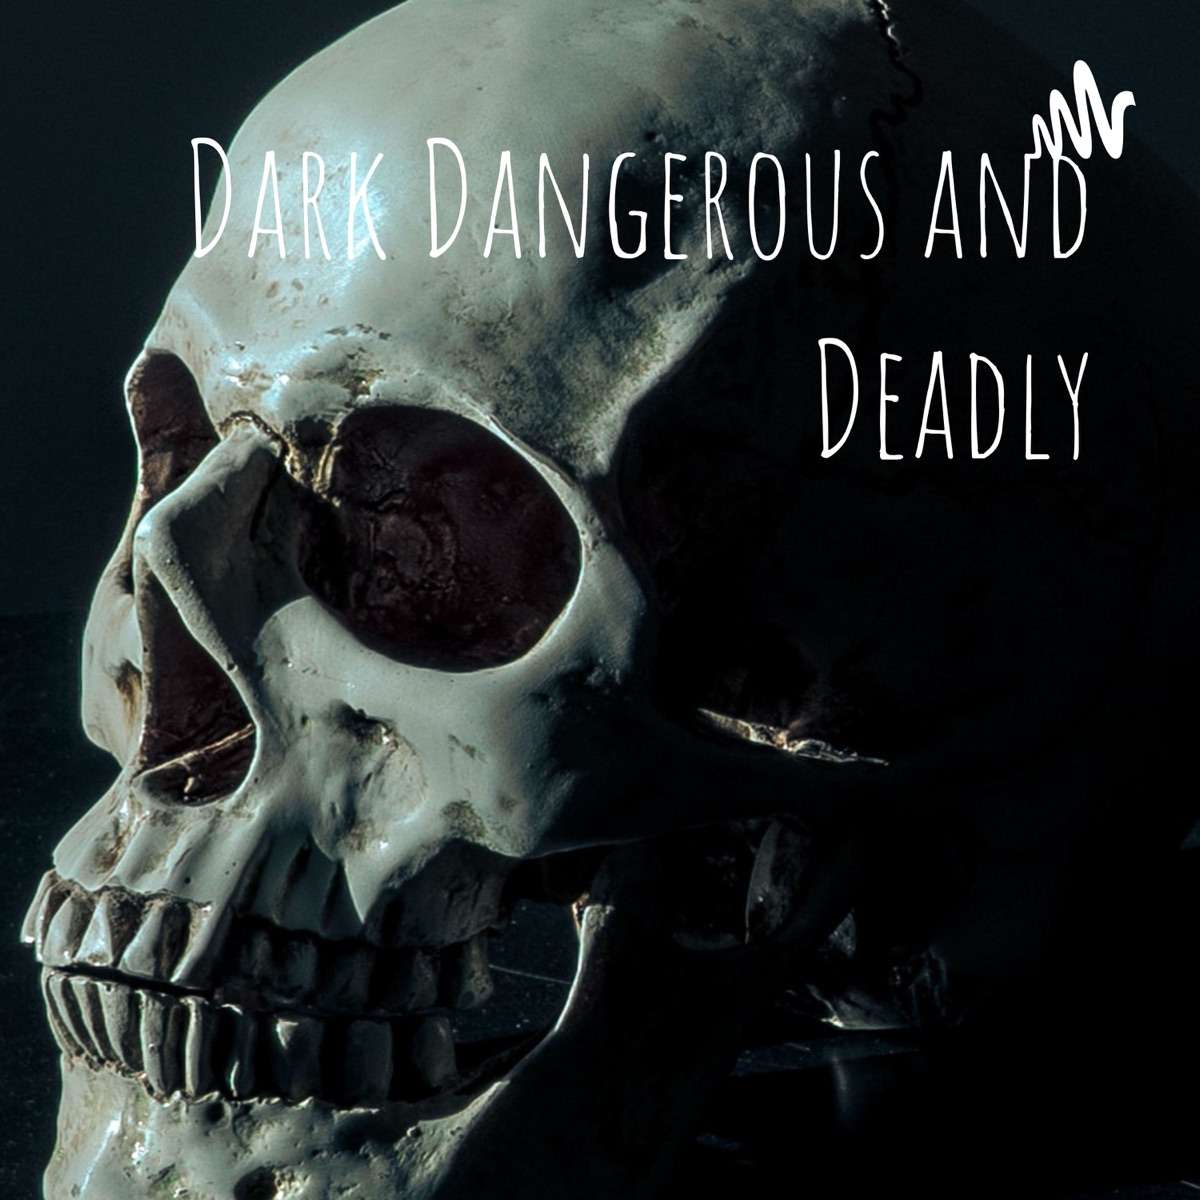 Dark Dangerous and Deadly